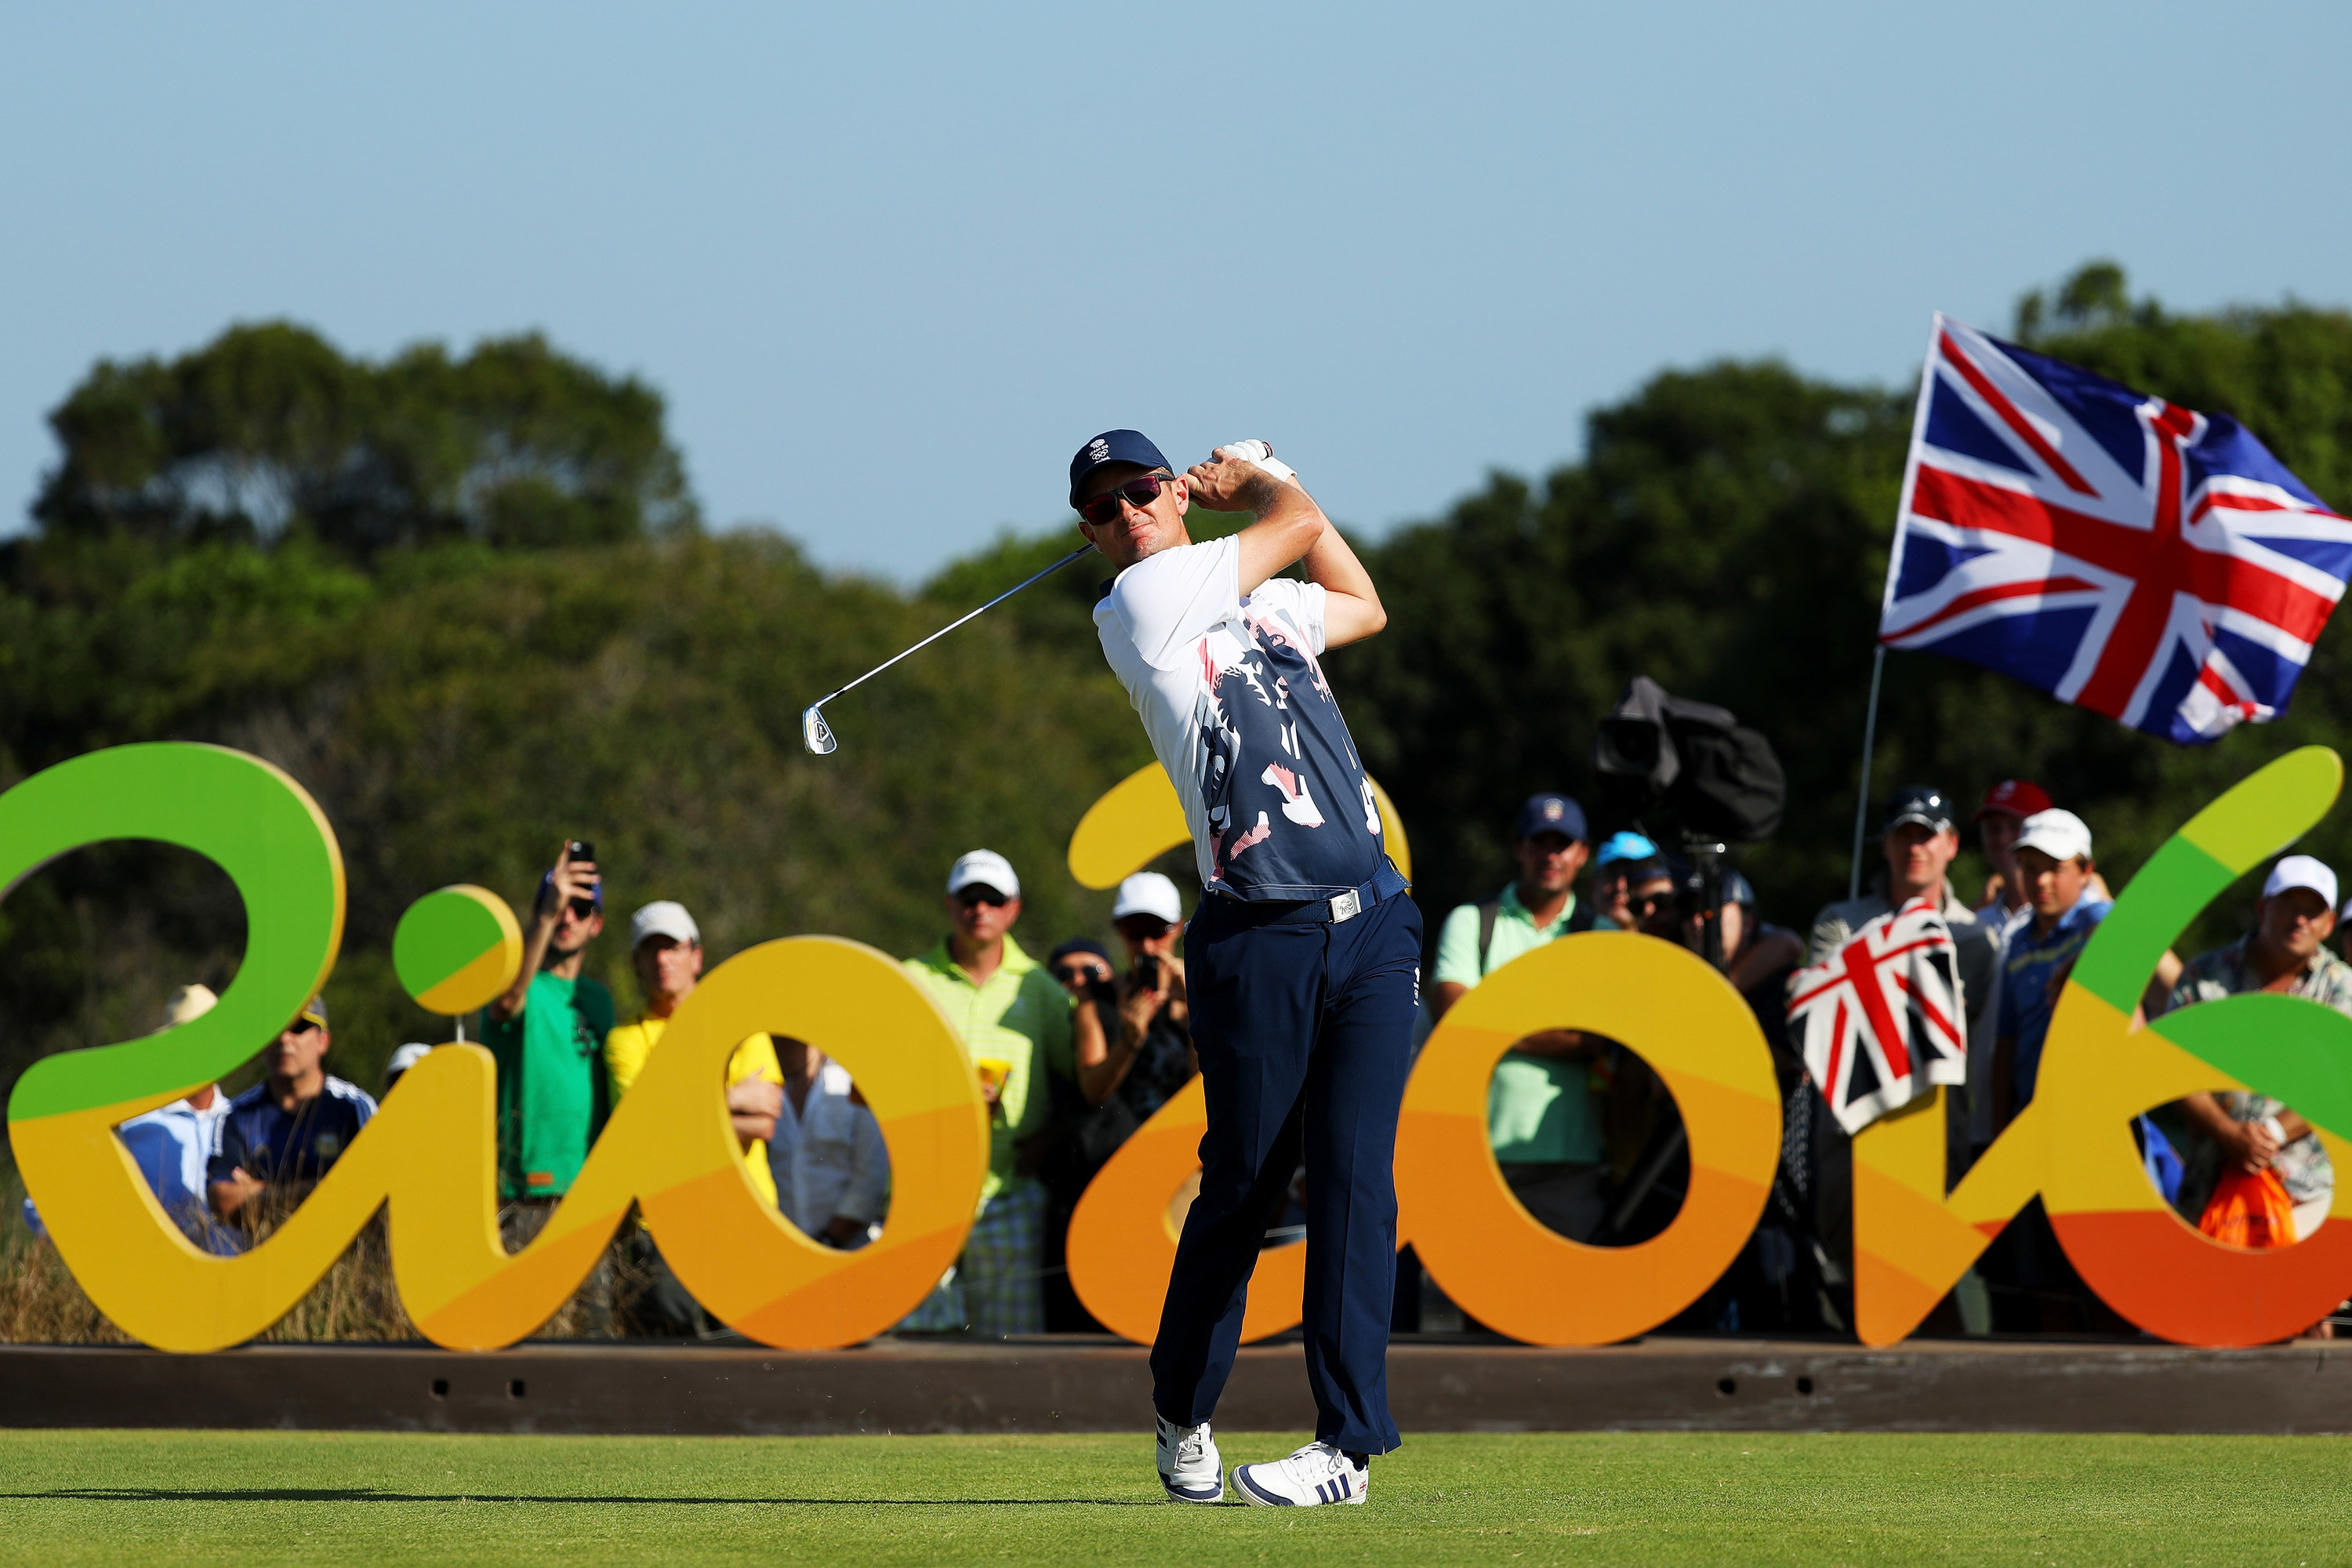 Man swings golf club in front of Rio 2016 sign